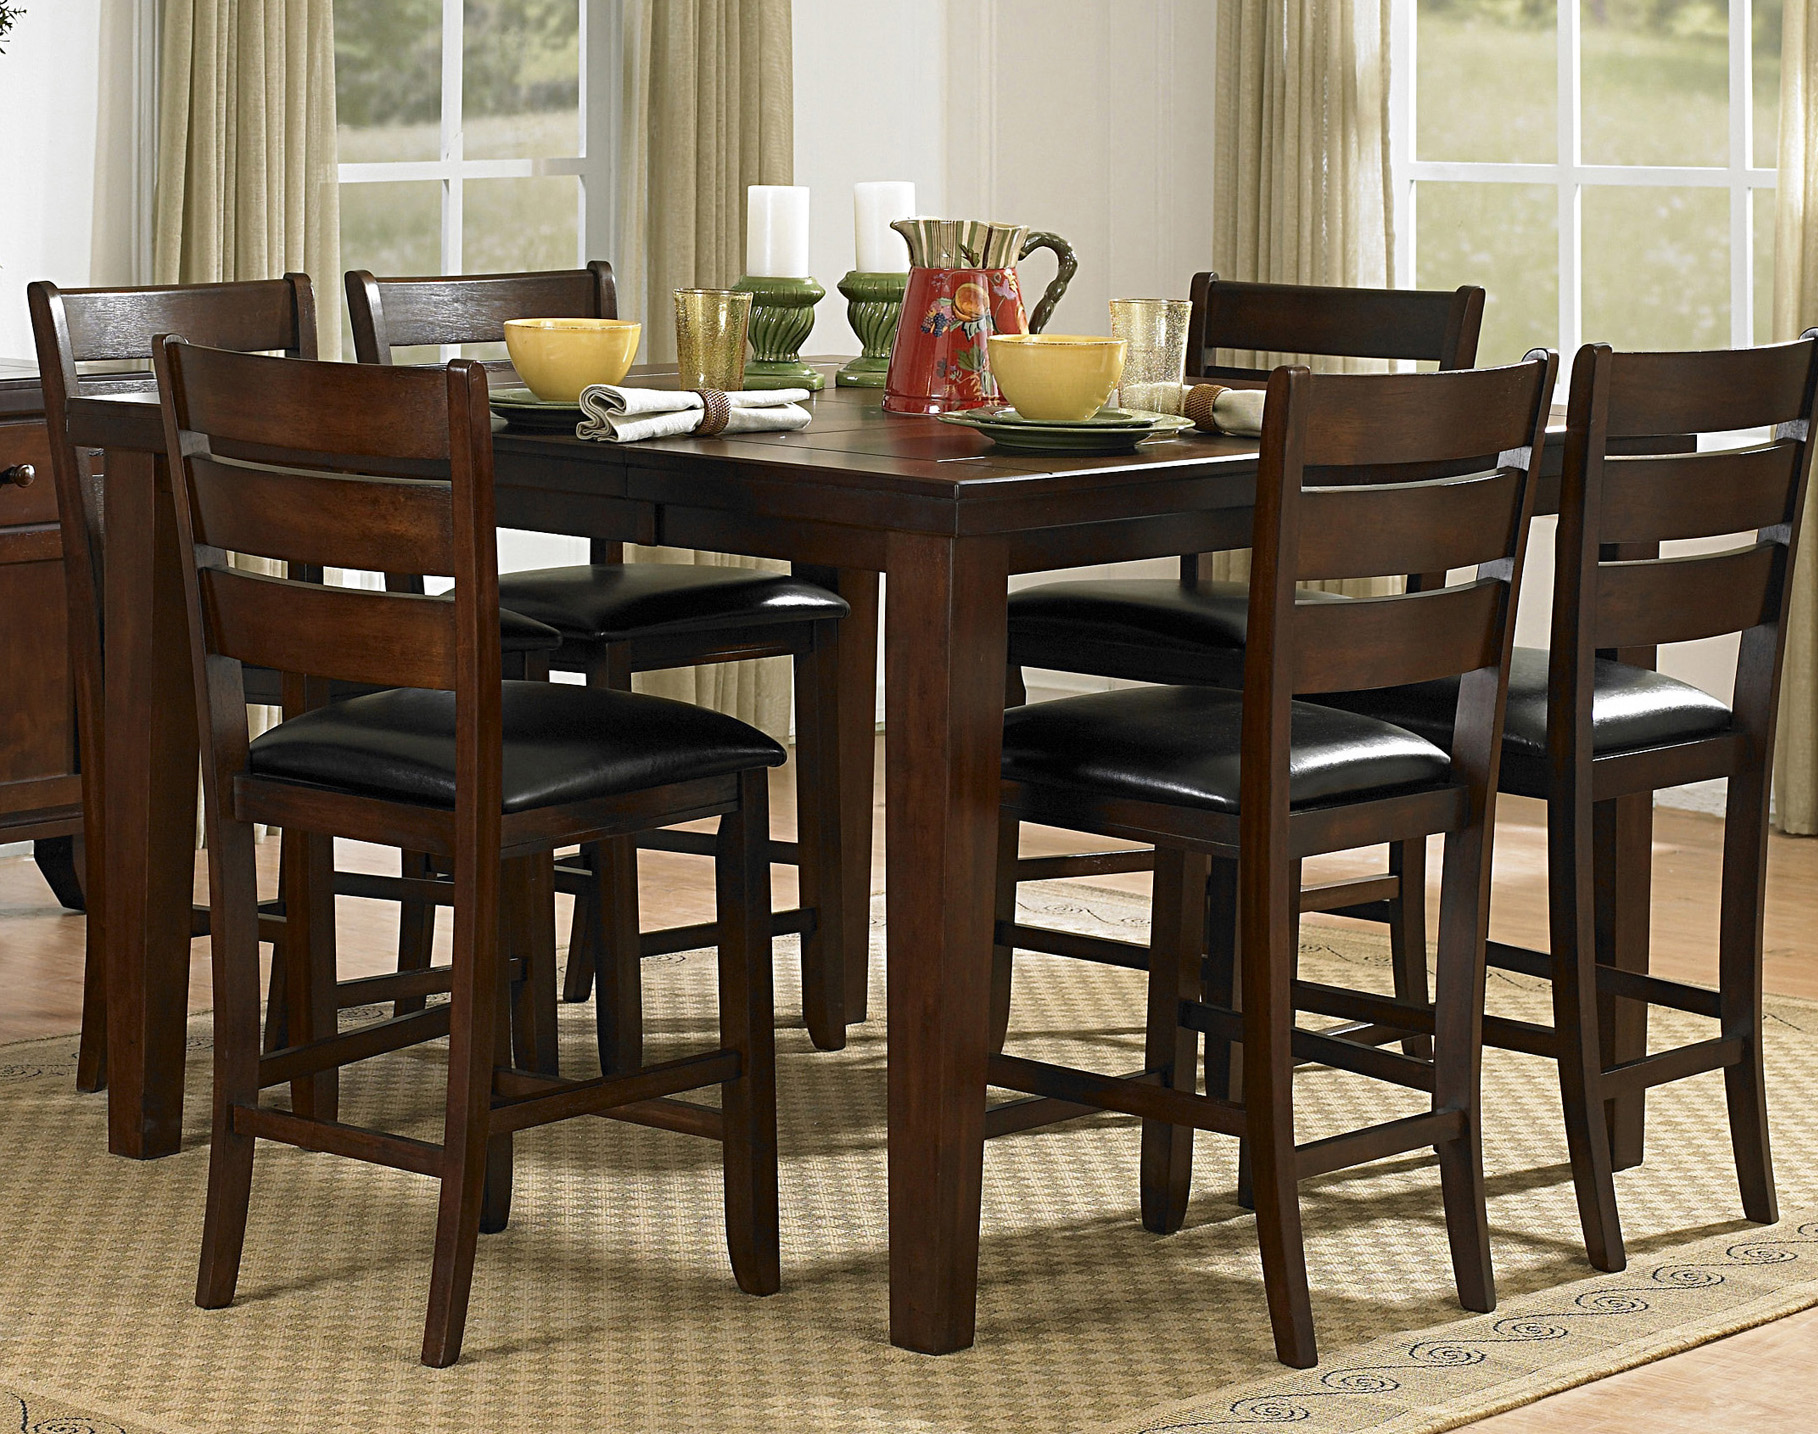 Counter Height Dining Room Chairs Homelegance Ameillia 5pc Counter Height Dining Room Set